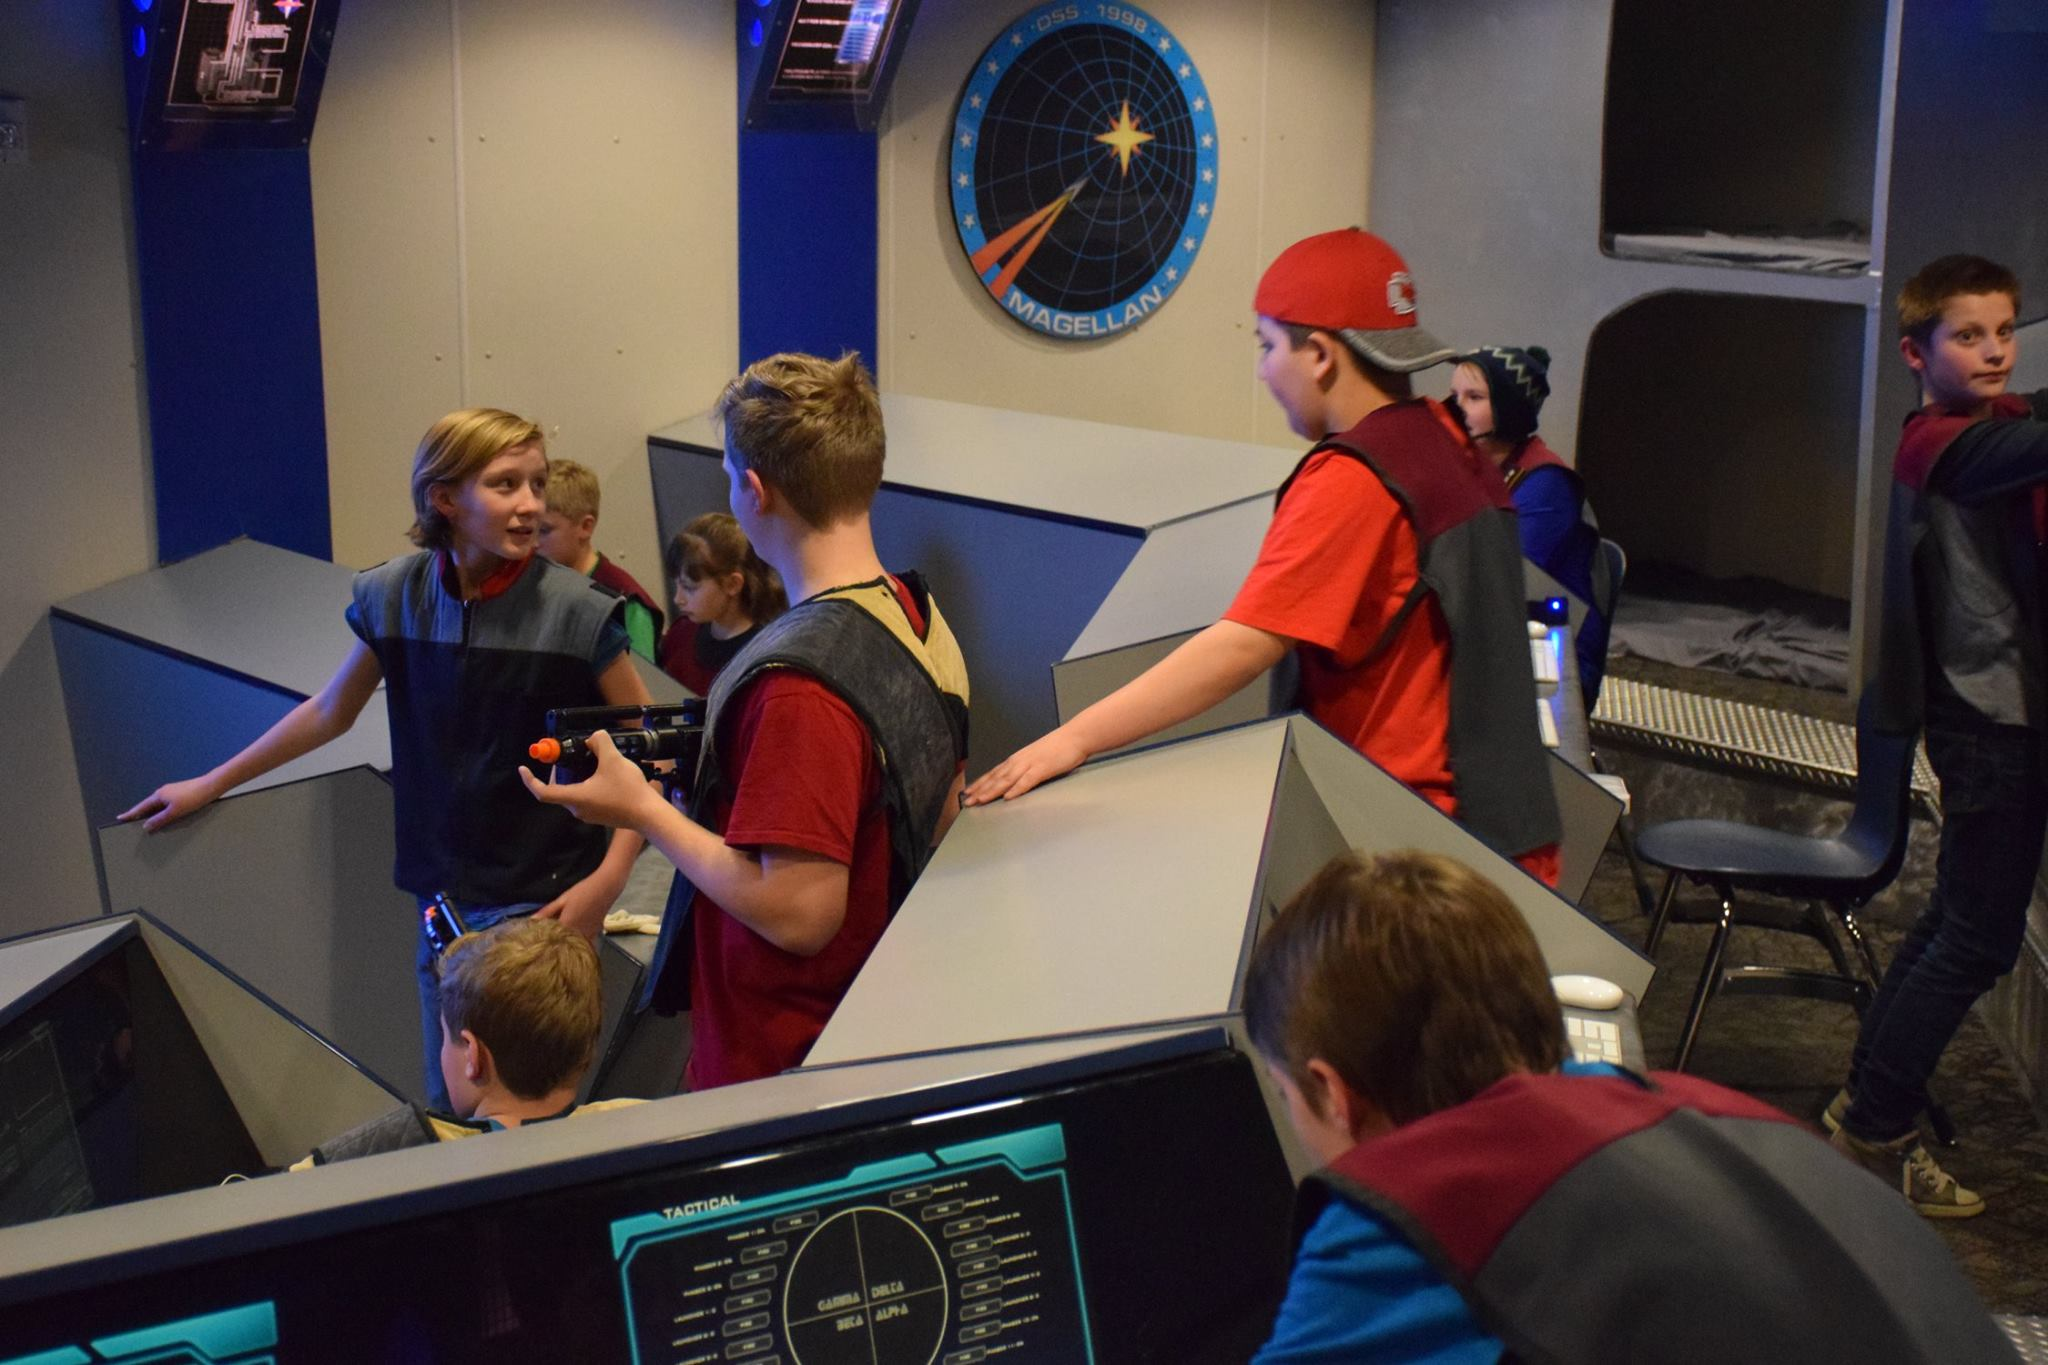 Captain Emme T gets her crews input during a summer camp at the Space Center on the USS Magellan_1529525291881.jpg.jpg